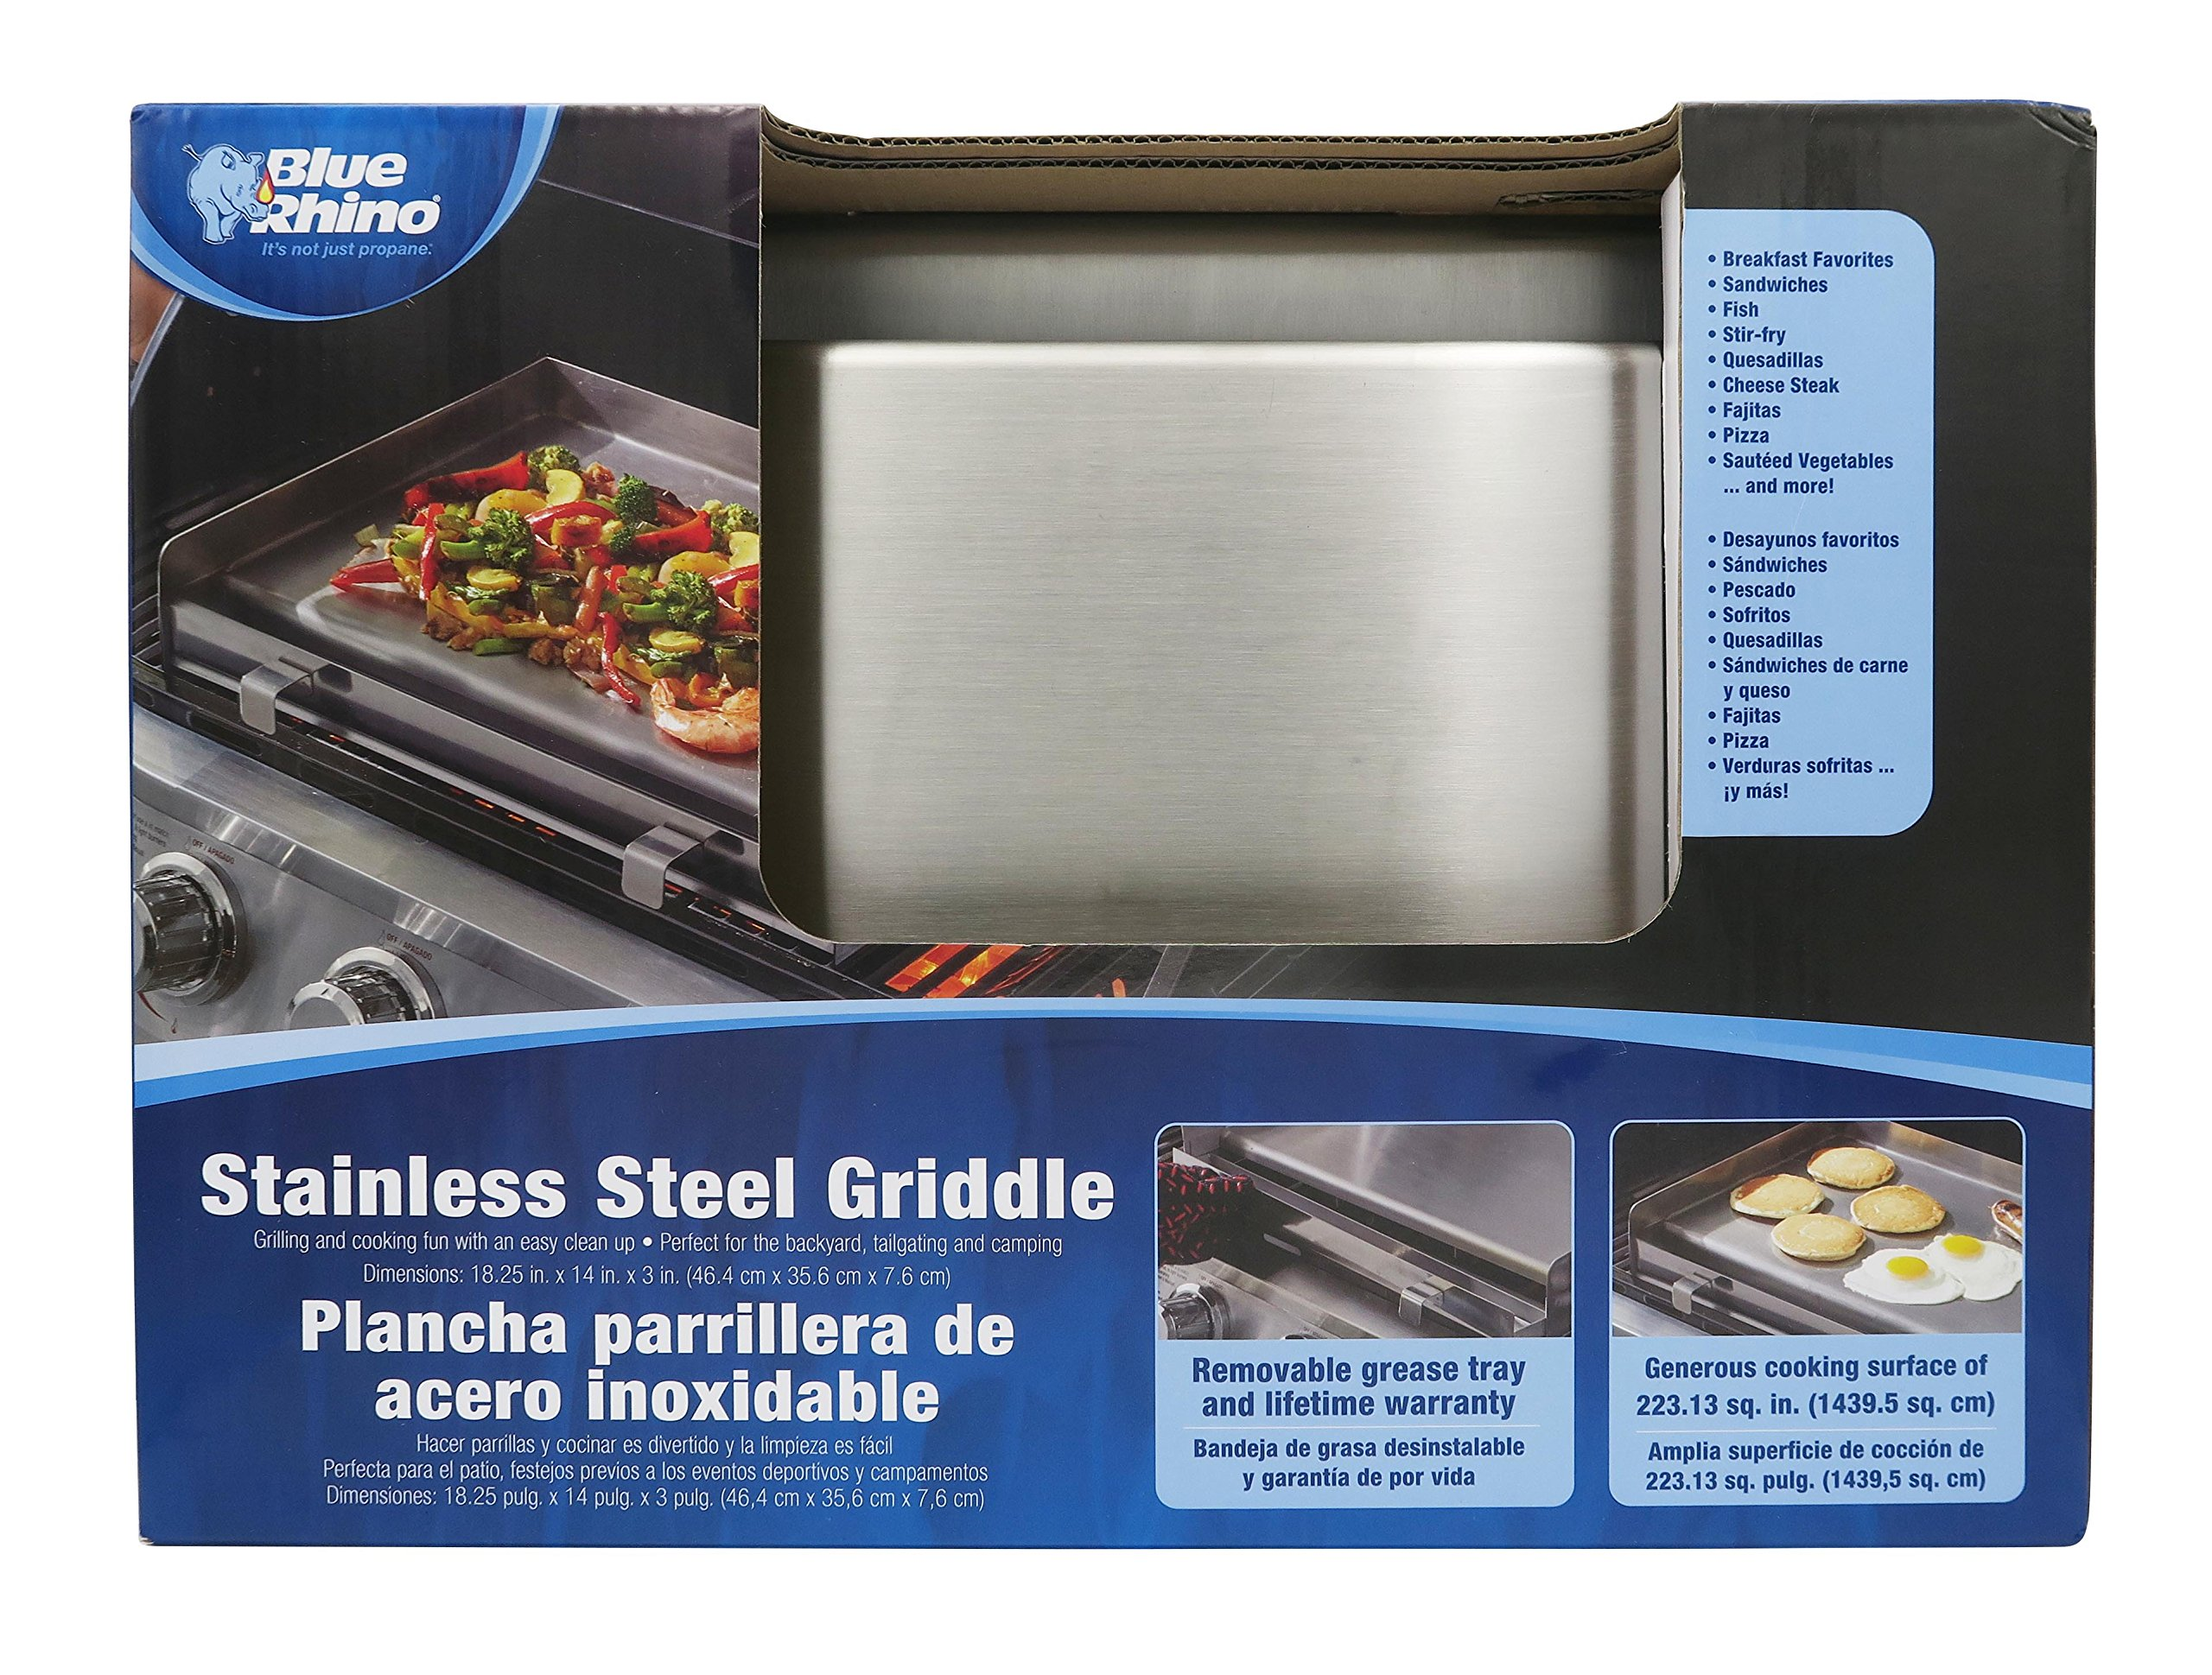 Mr. BBQ Portable Stainless Steel BBQ Griddle - Attach to your Grill or BBQ - Built in Grease Trough - Ideal for Tailgating, Backyard Parties and Camping - Make Eggs, Pancakes, or Bacon on the Grill